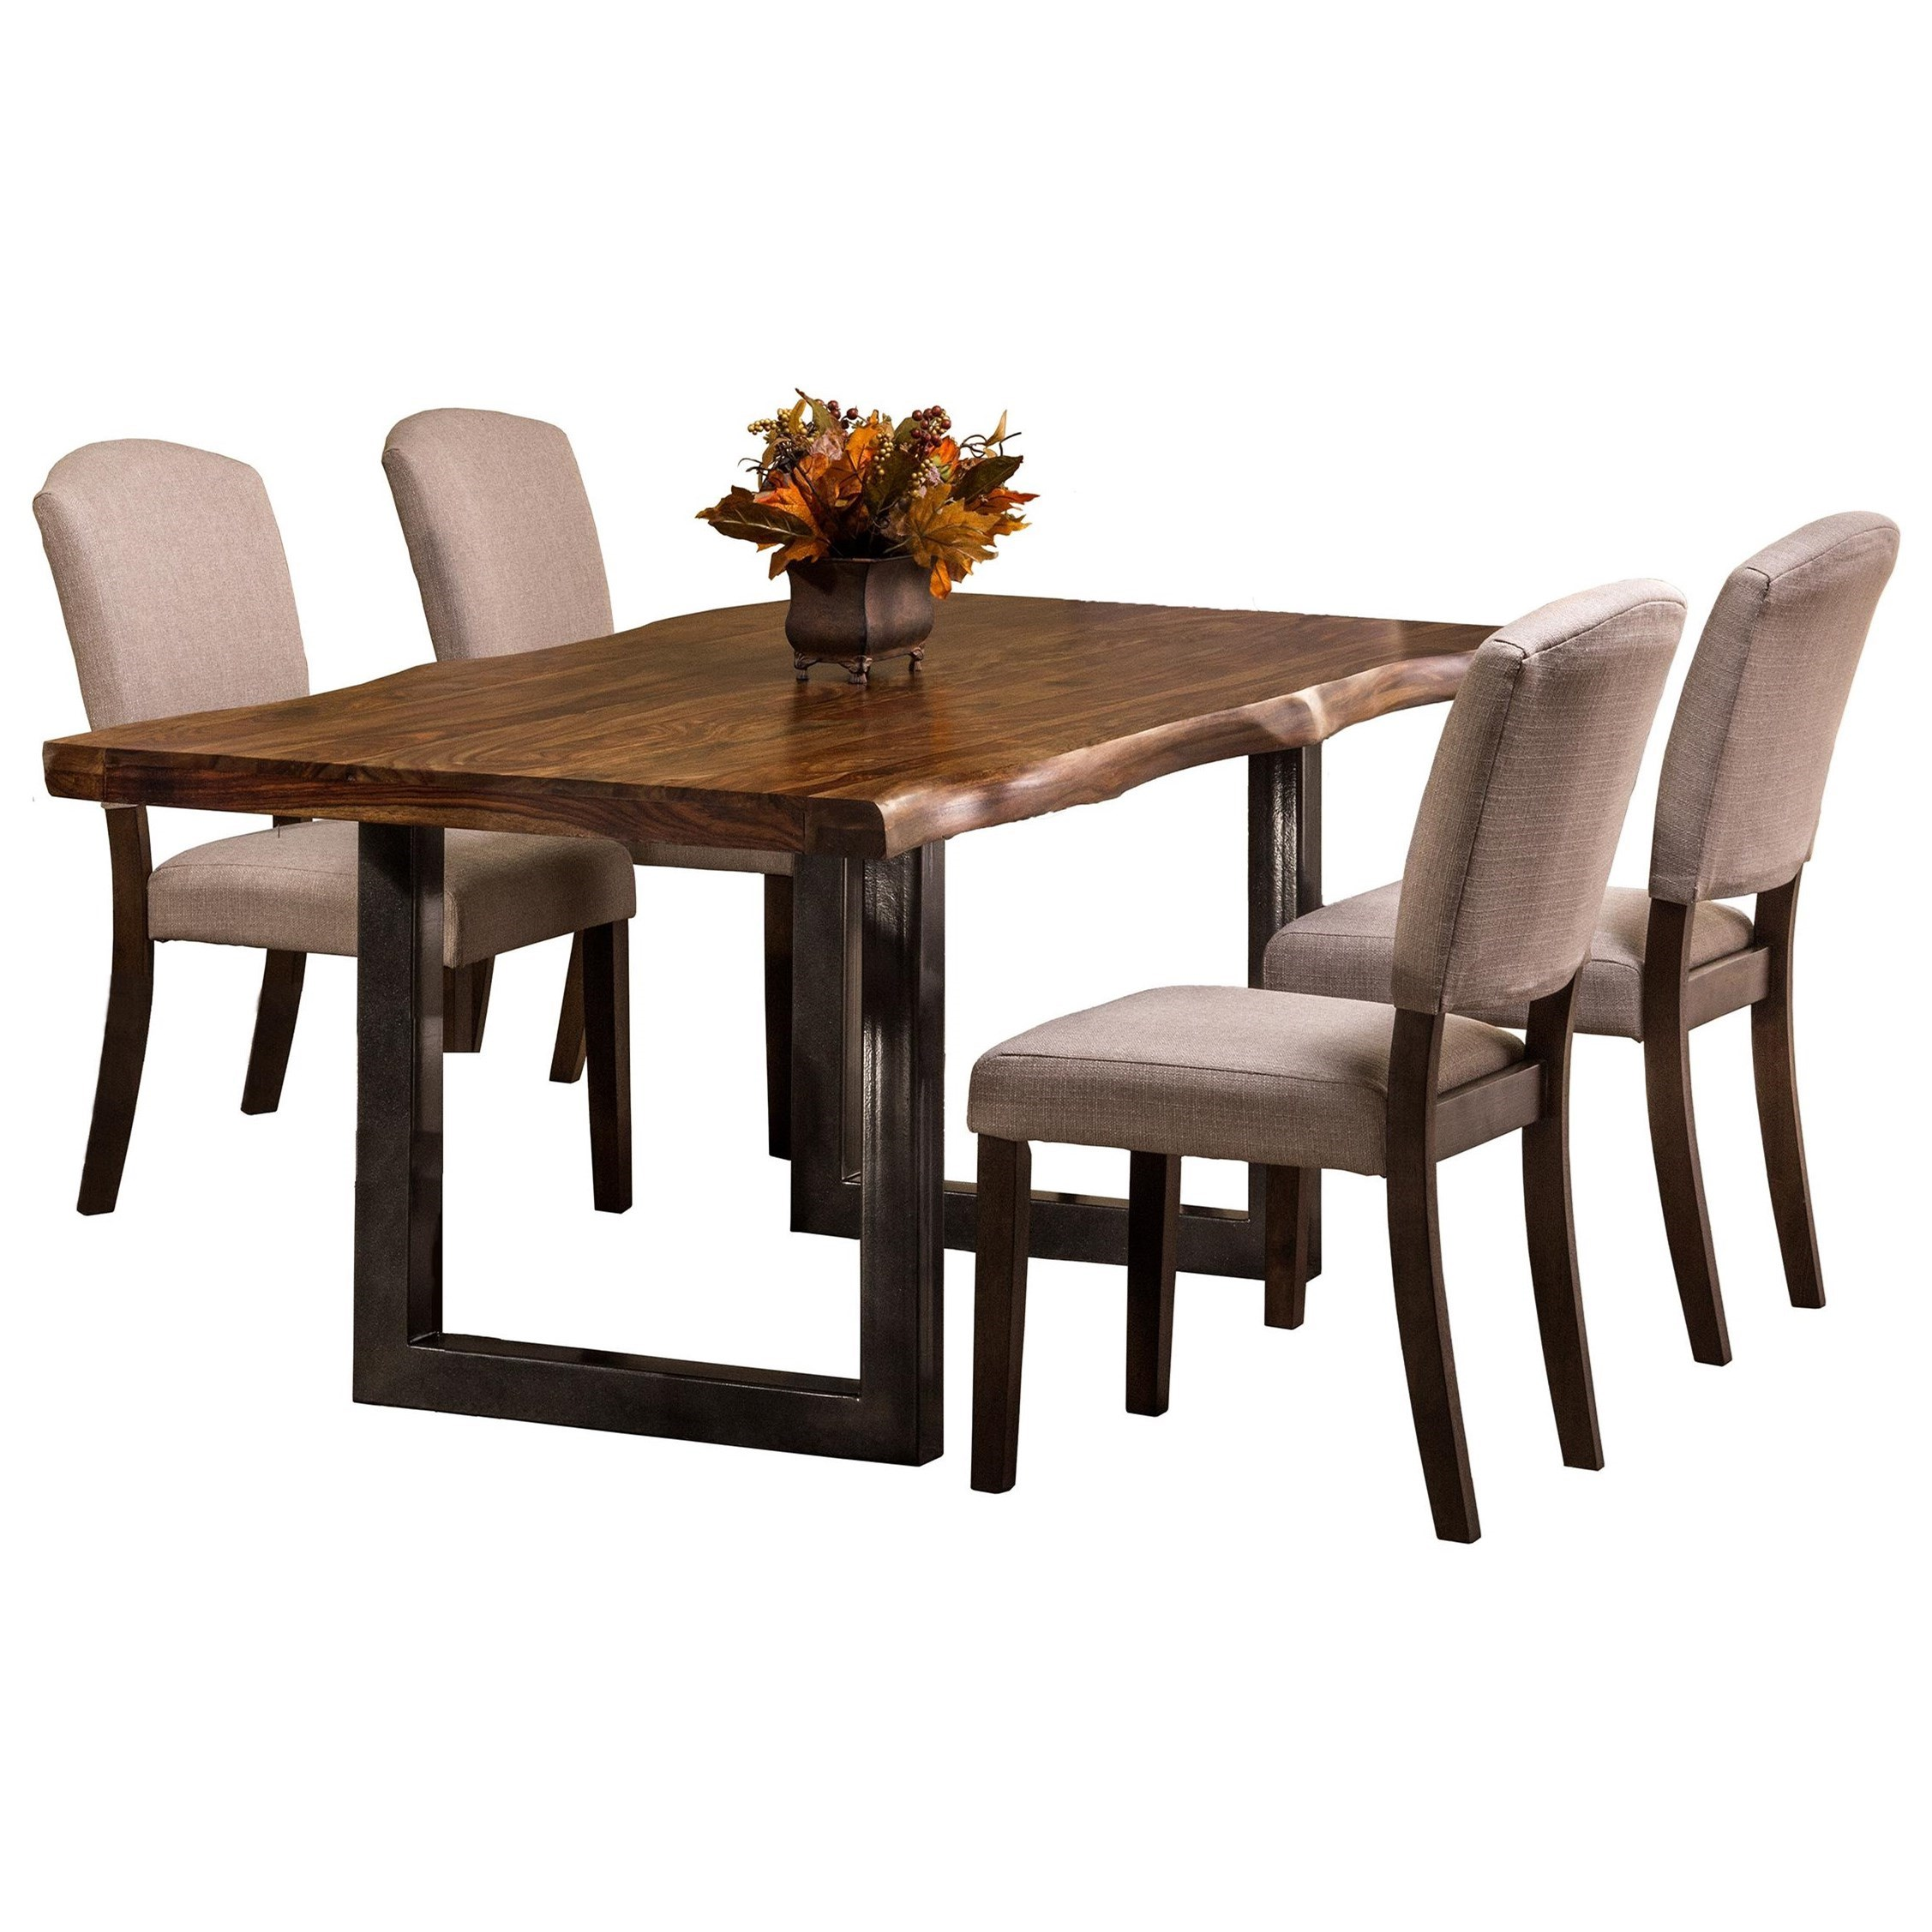 Dining Room Stylish Natural Wood Coffee Tables Rustic: Natural Sheesham Wood Rectangular Dining Table By